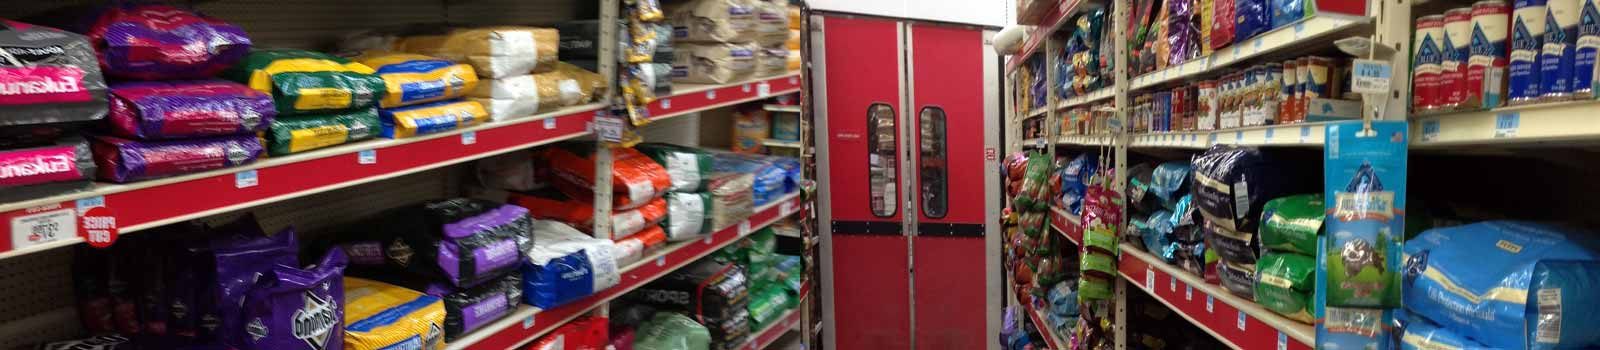 Store isle stocked full of kibble dog food, which dog food is best?